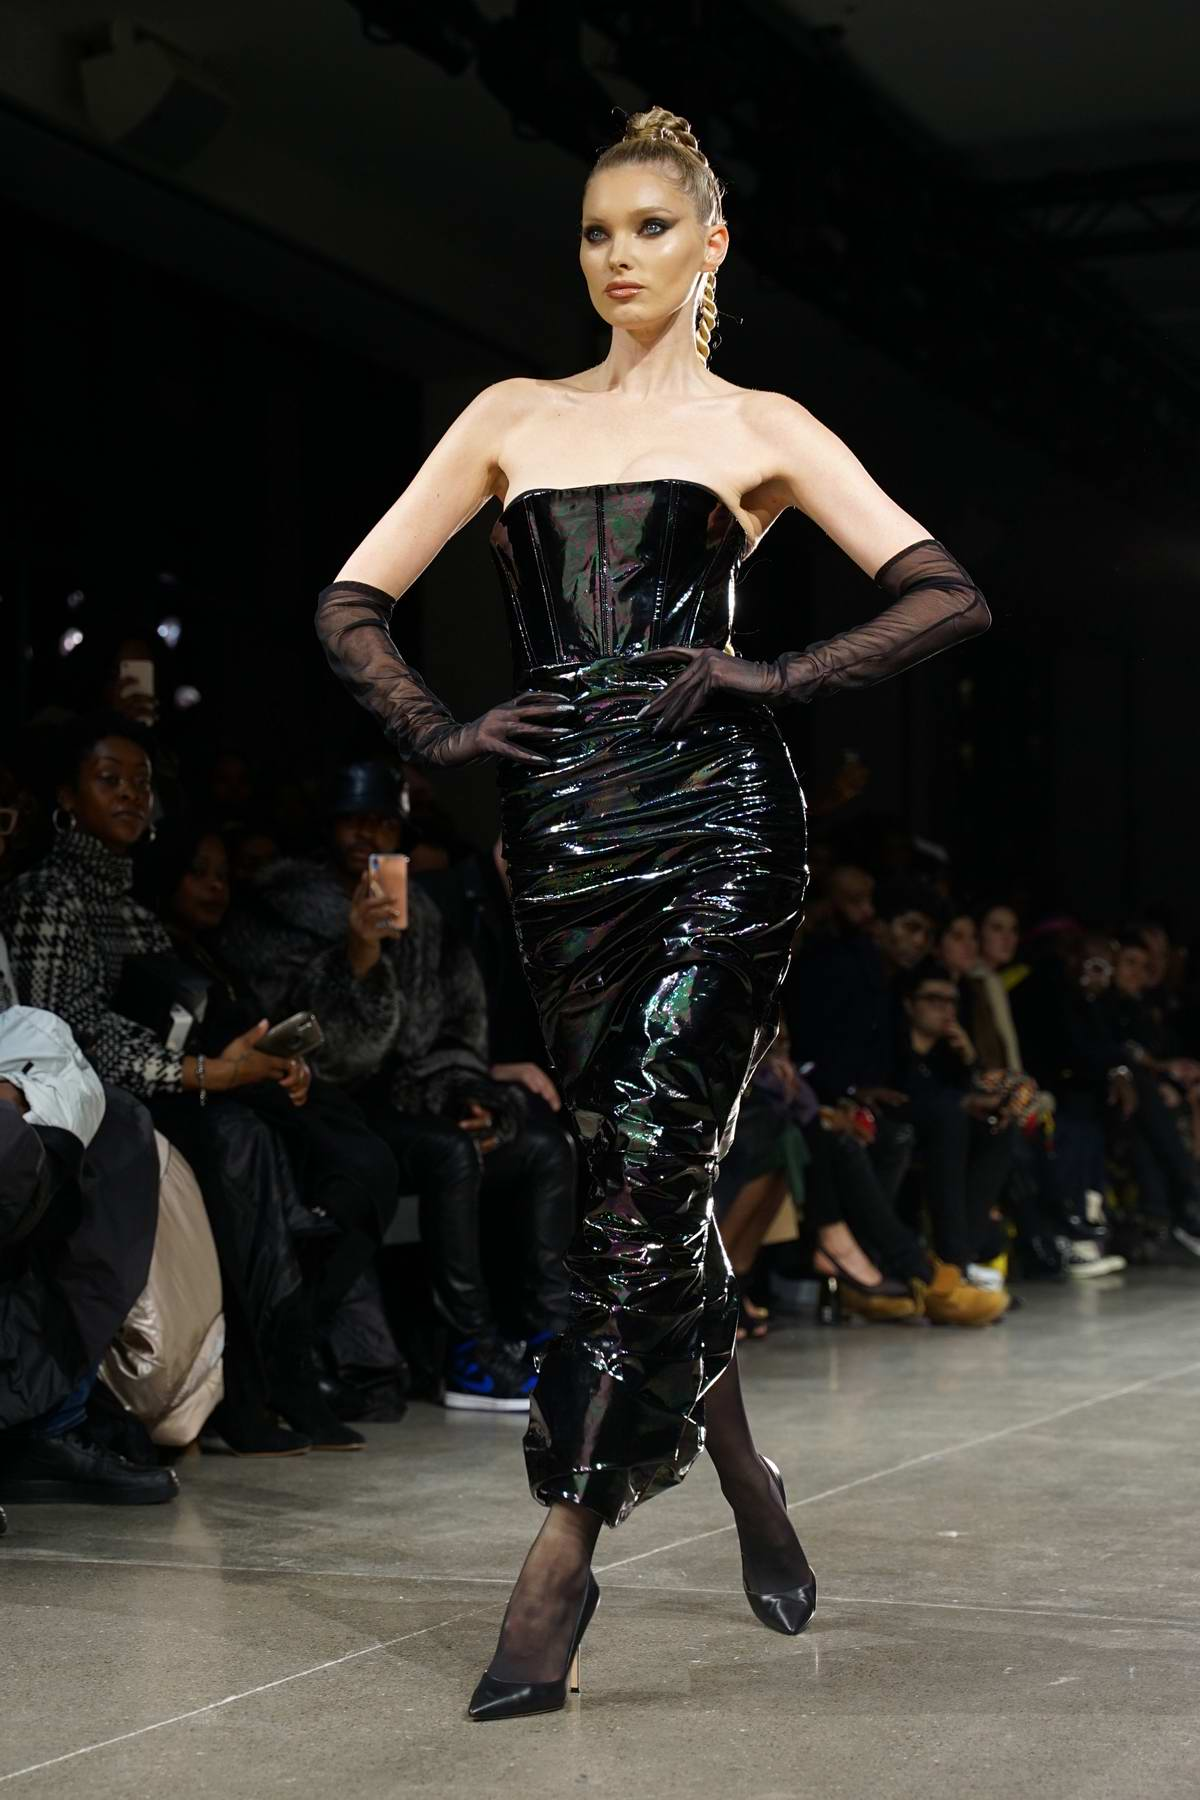 Elsa Hosk walks the runway for LaQuan Smith Fall 2020 Show during NYFW in New York City